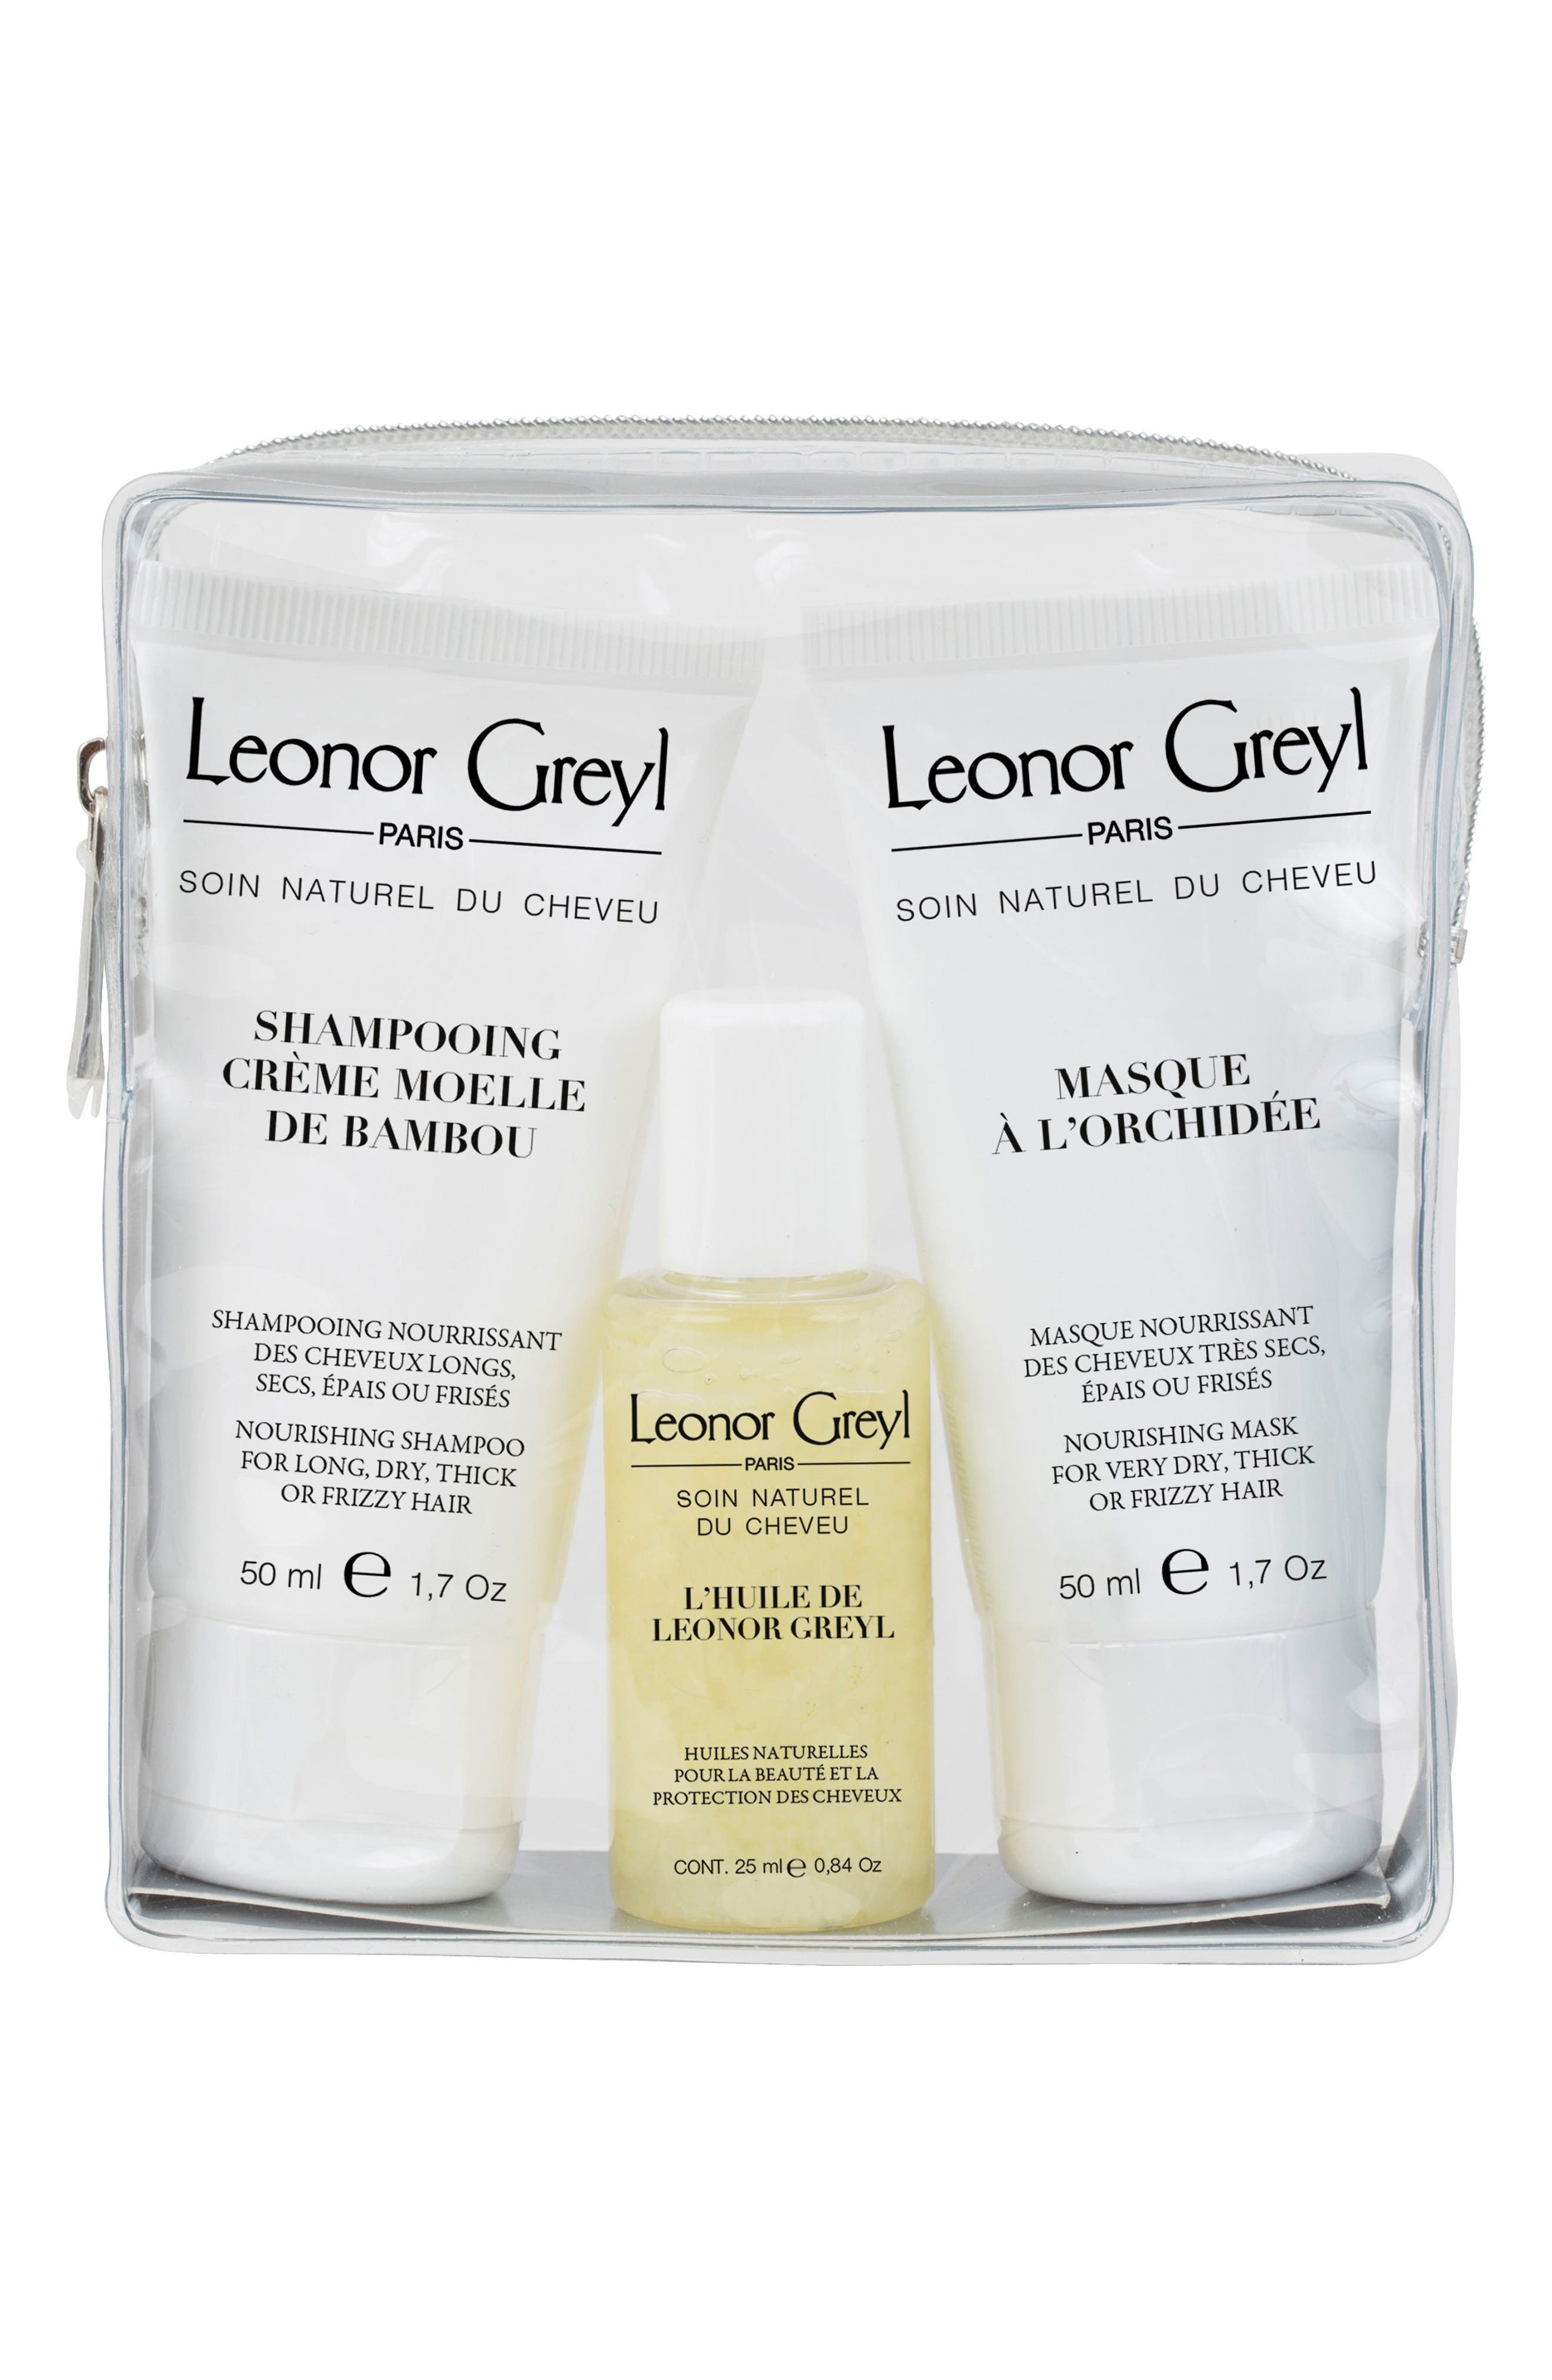 Main Image - Leonor Greyl PARIS Luxury Travel Kit for Very Dry, Thick or Curly Hair